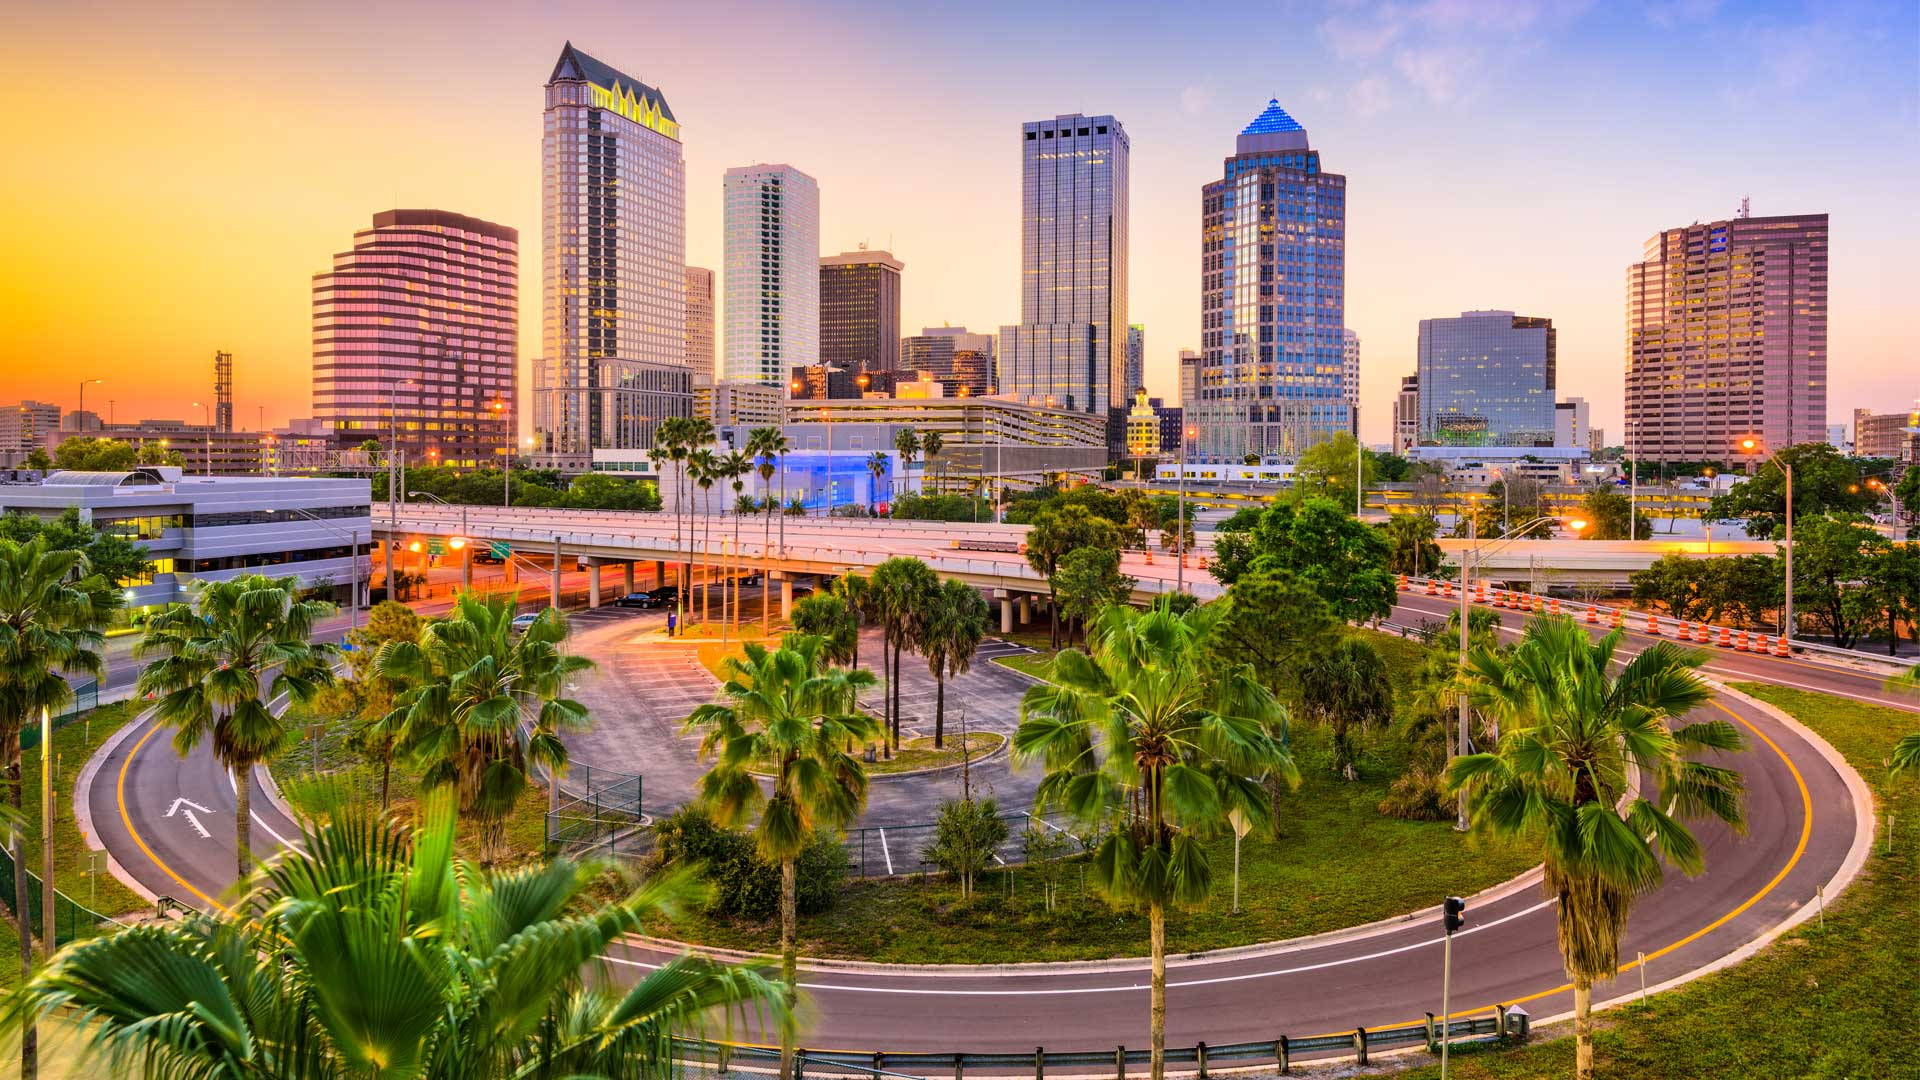 Best Family-Friendly Destinations in Tampa?